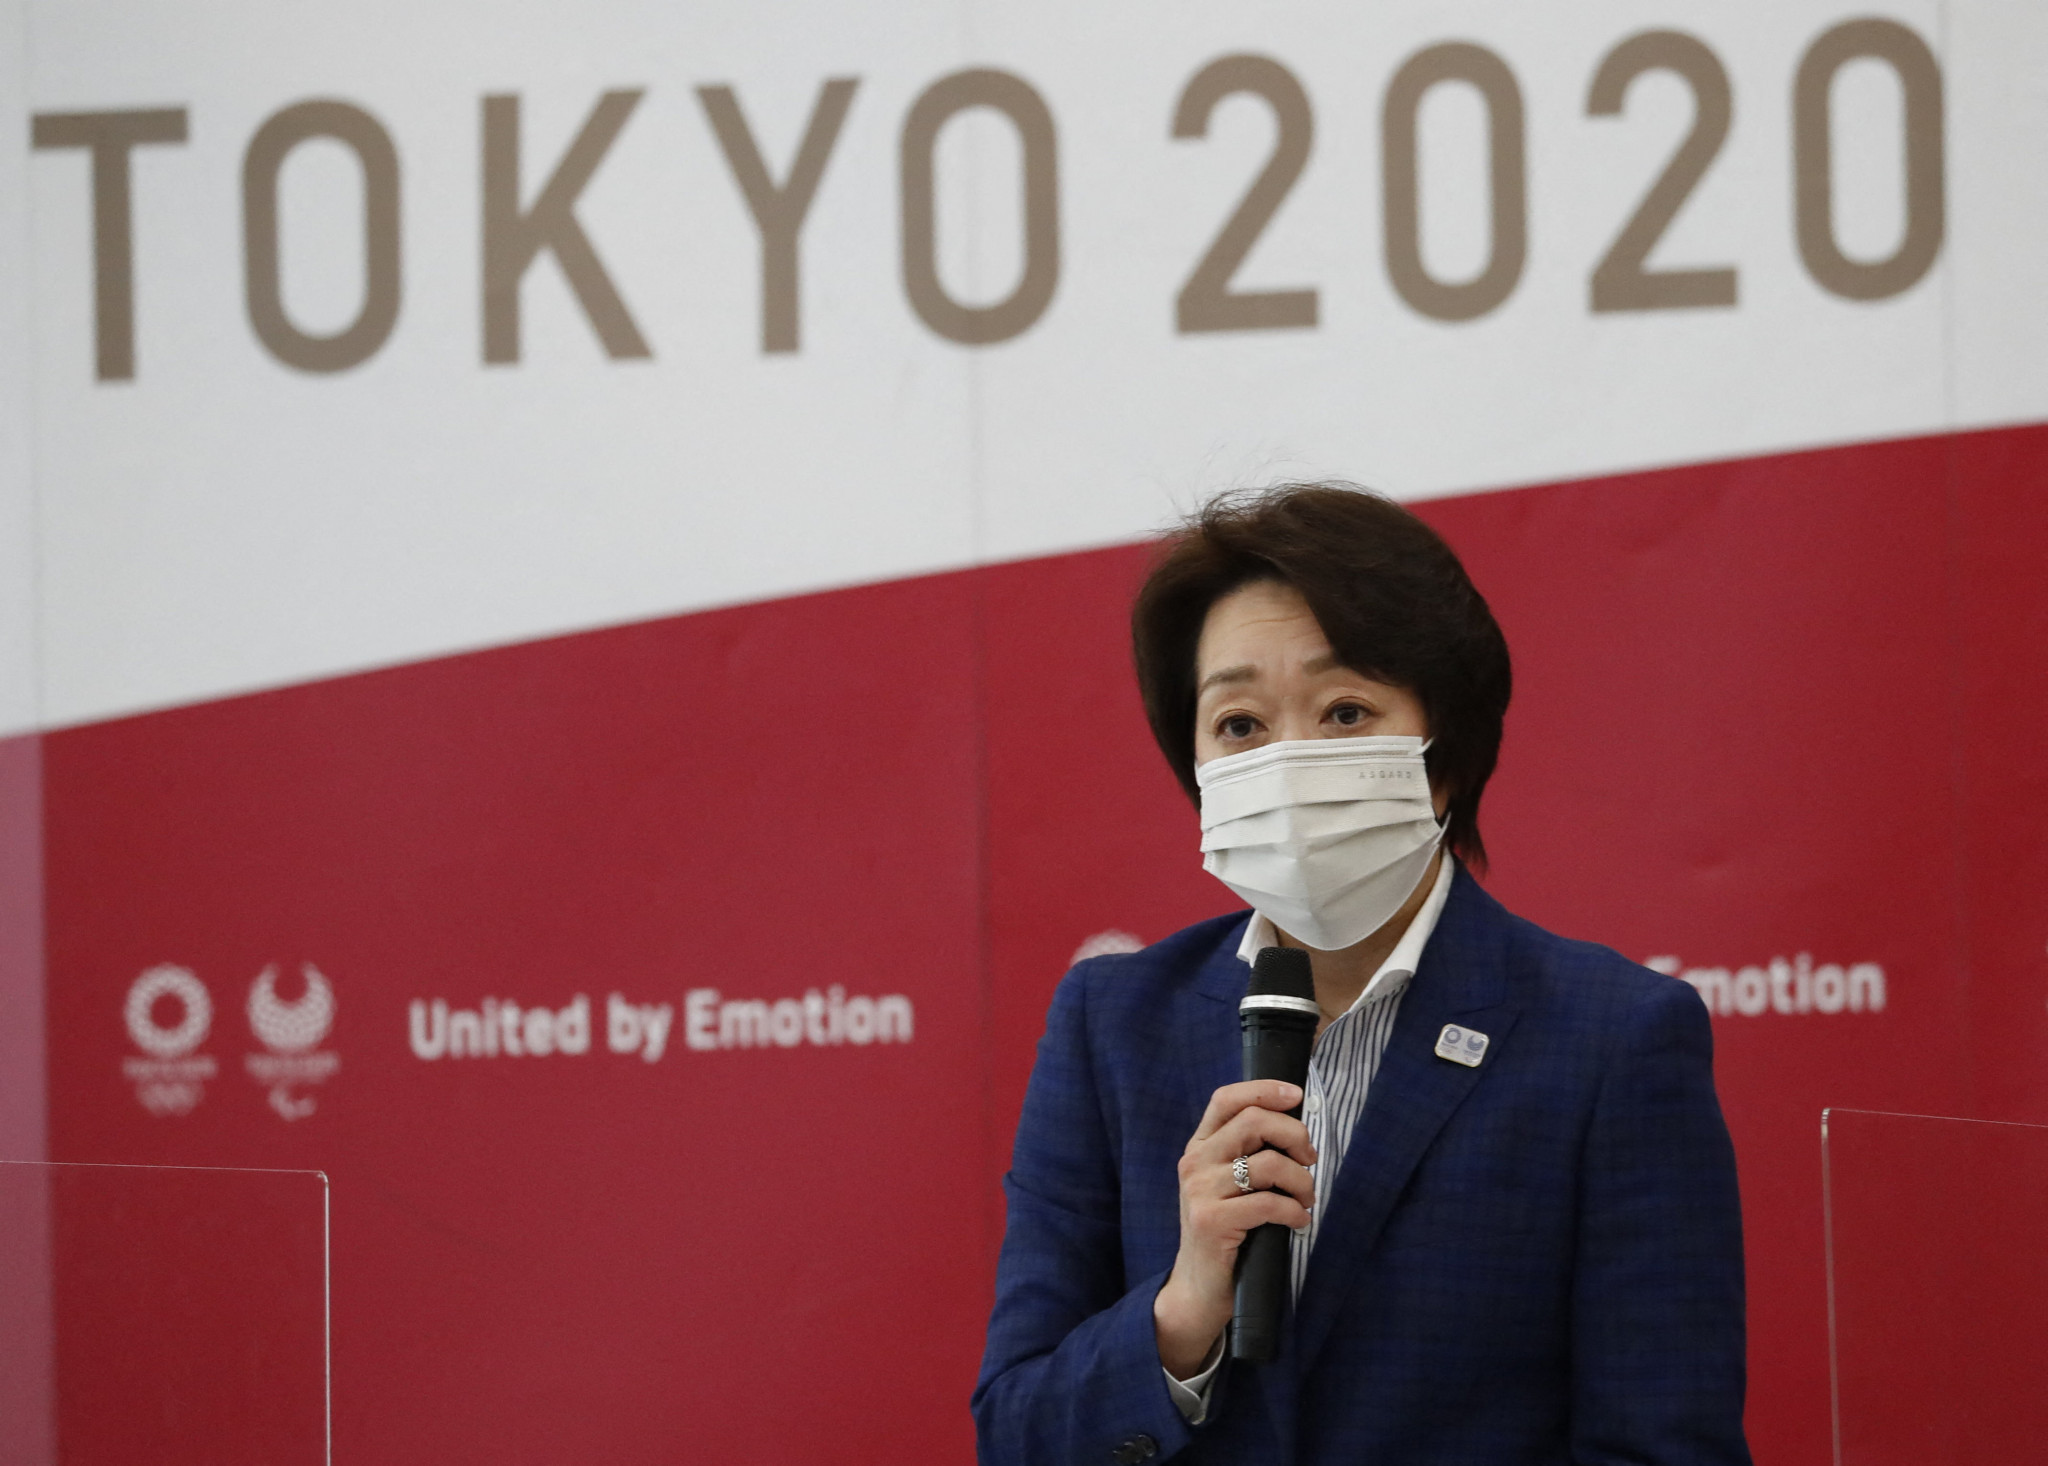 Tokyo 2020 President Seiko Hashimoto defended the inclusion of spectators at the Games ©Getty Images